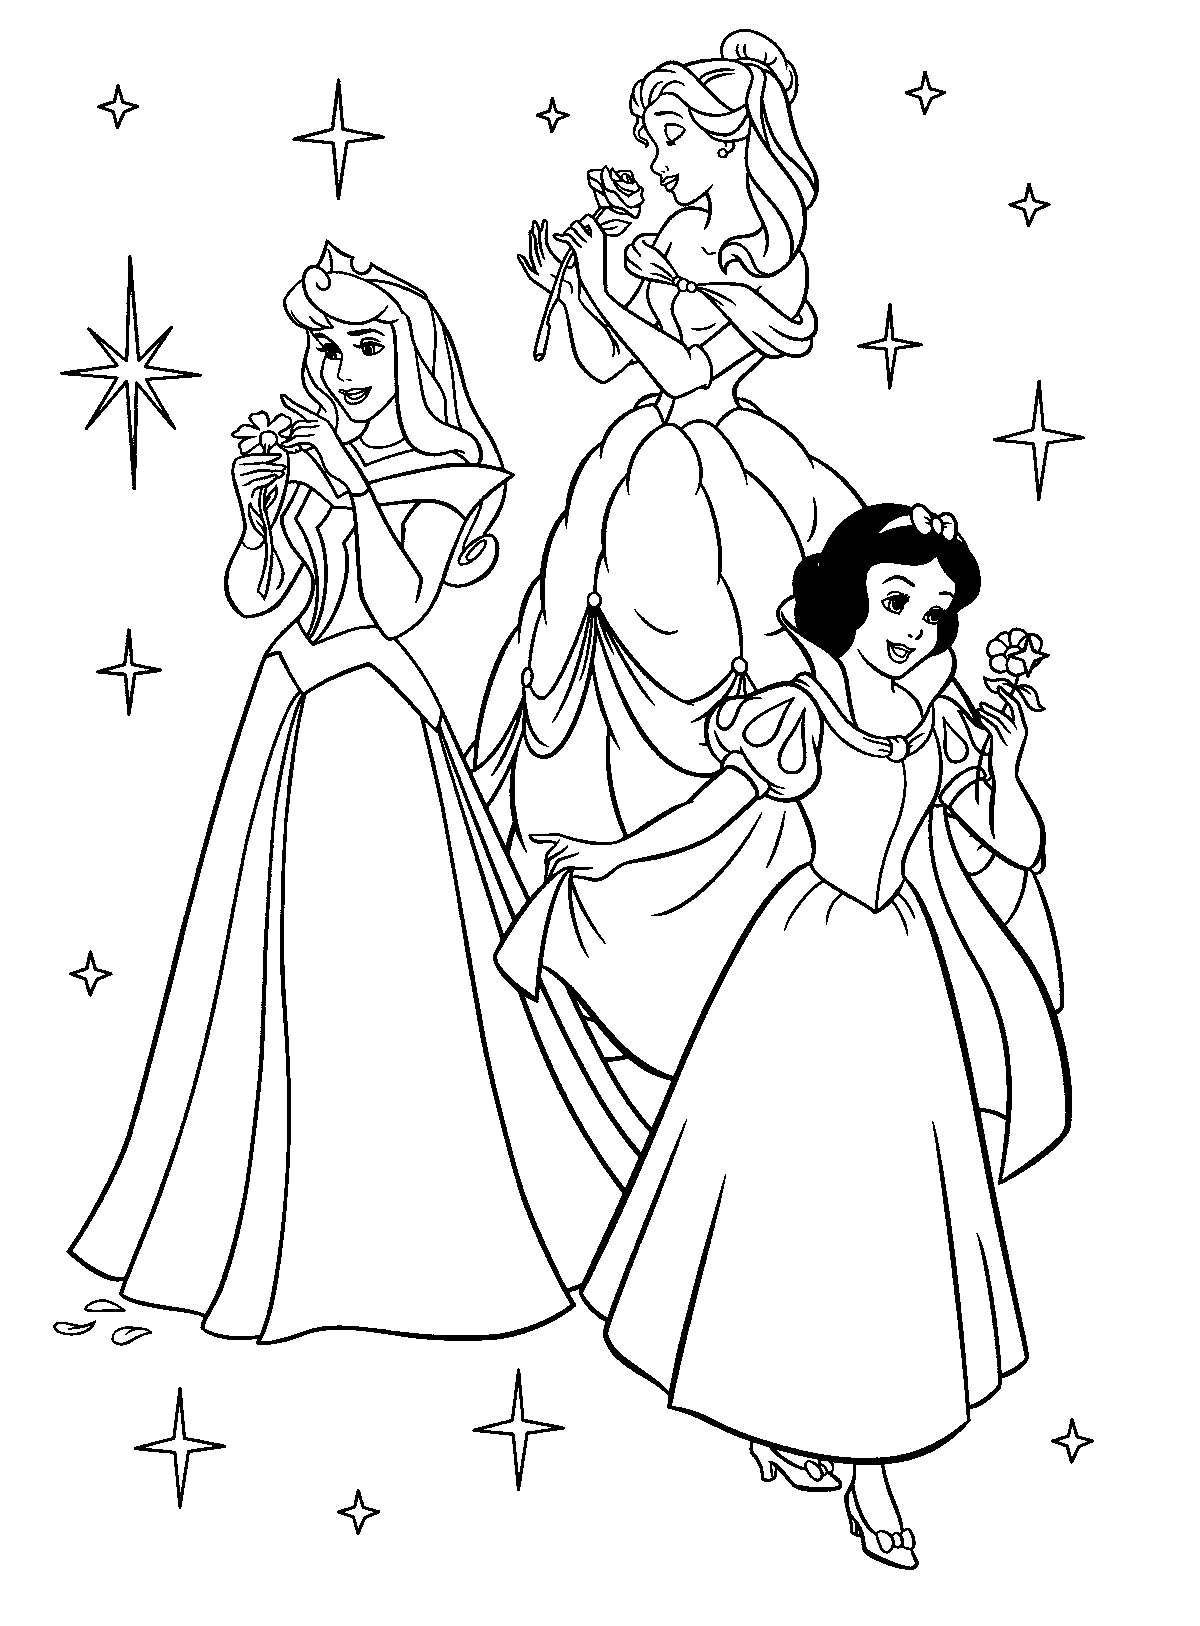 Stylish Ideas Disney Printable Coloring Pages Sheets - Coloring Pages | 1626x1200